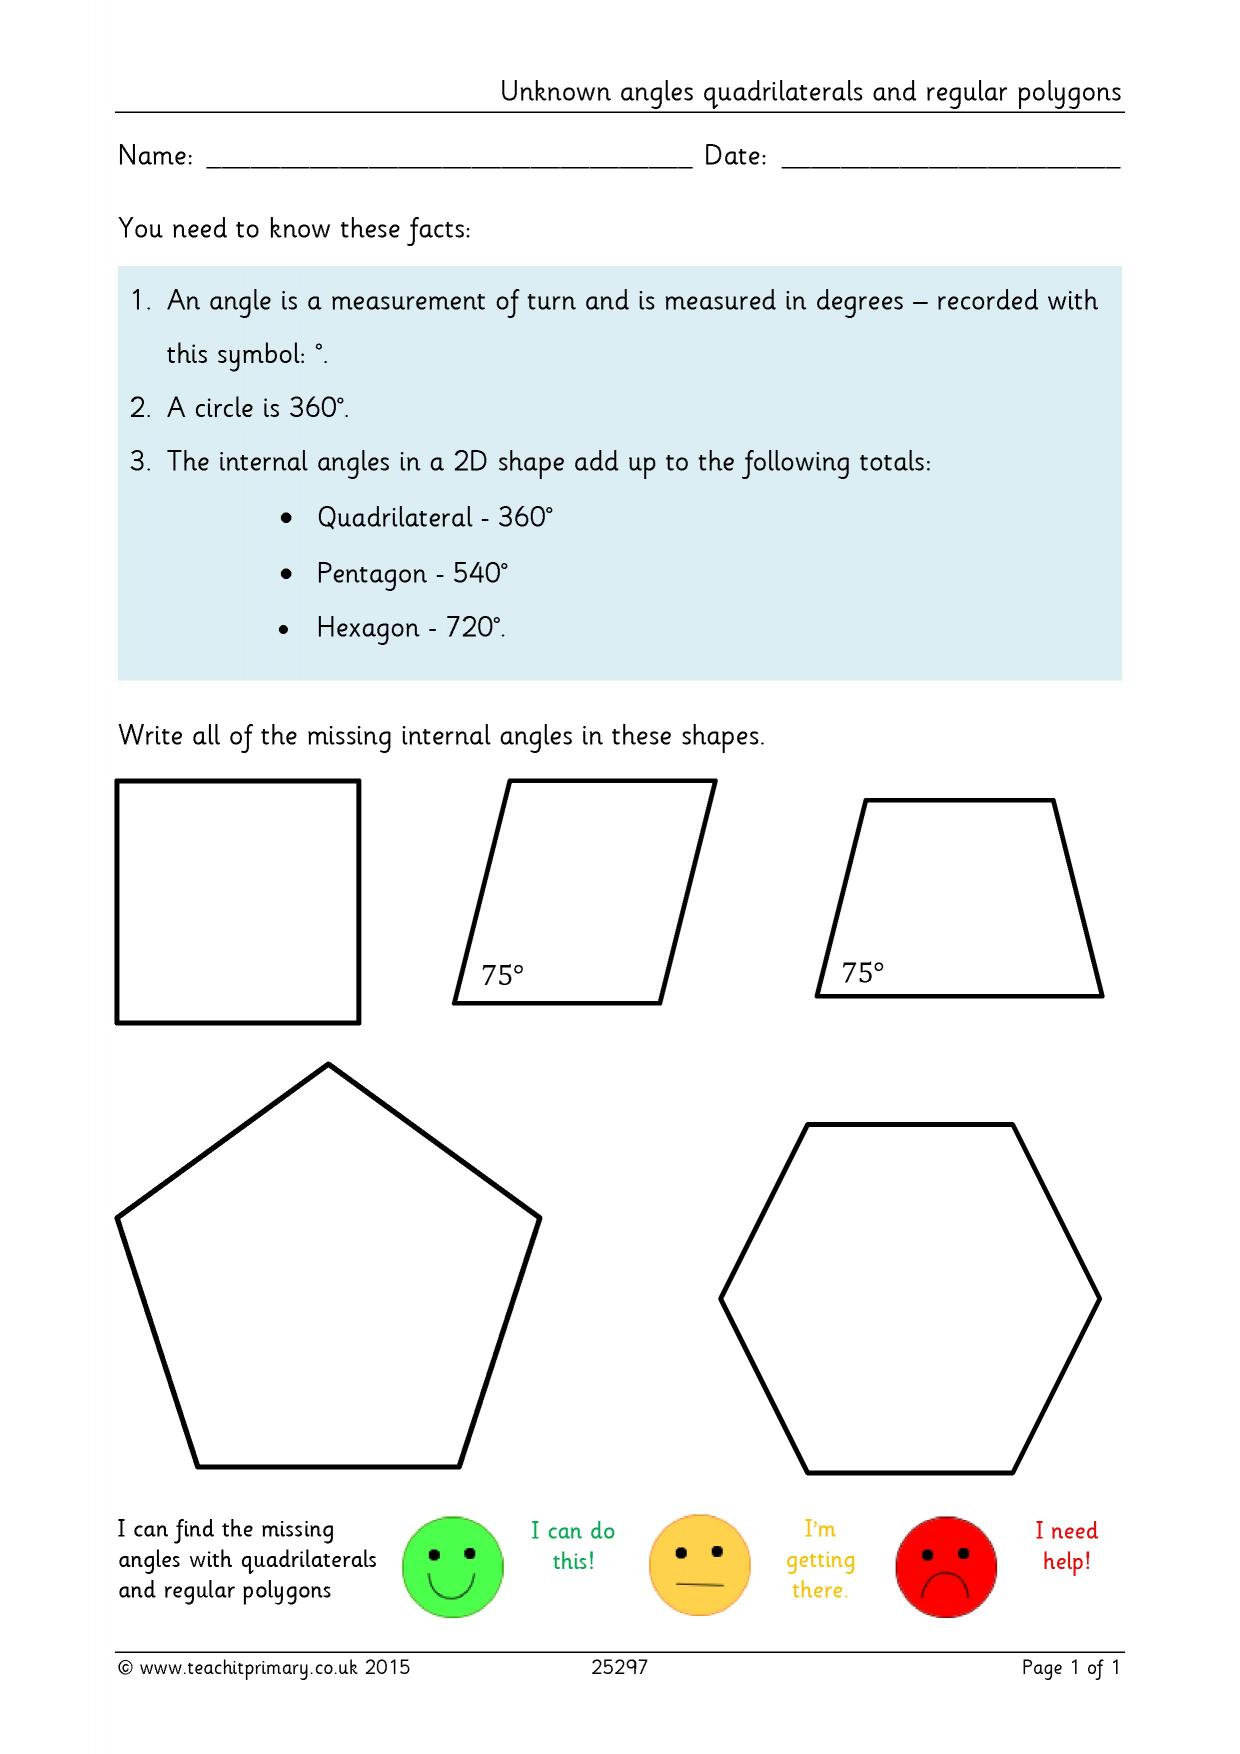 Worksheet On Quadrilaterals For Grade 9